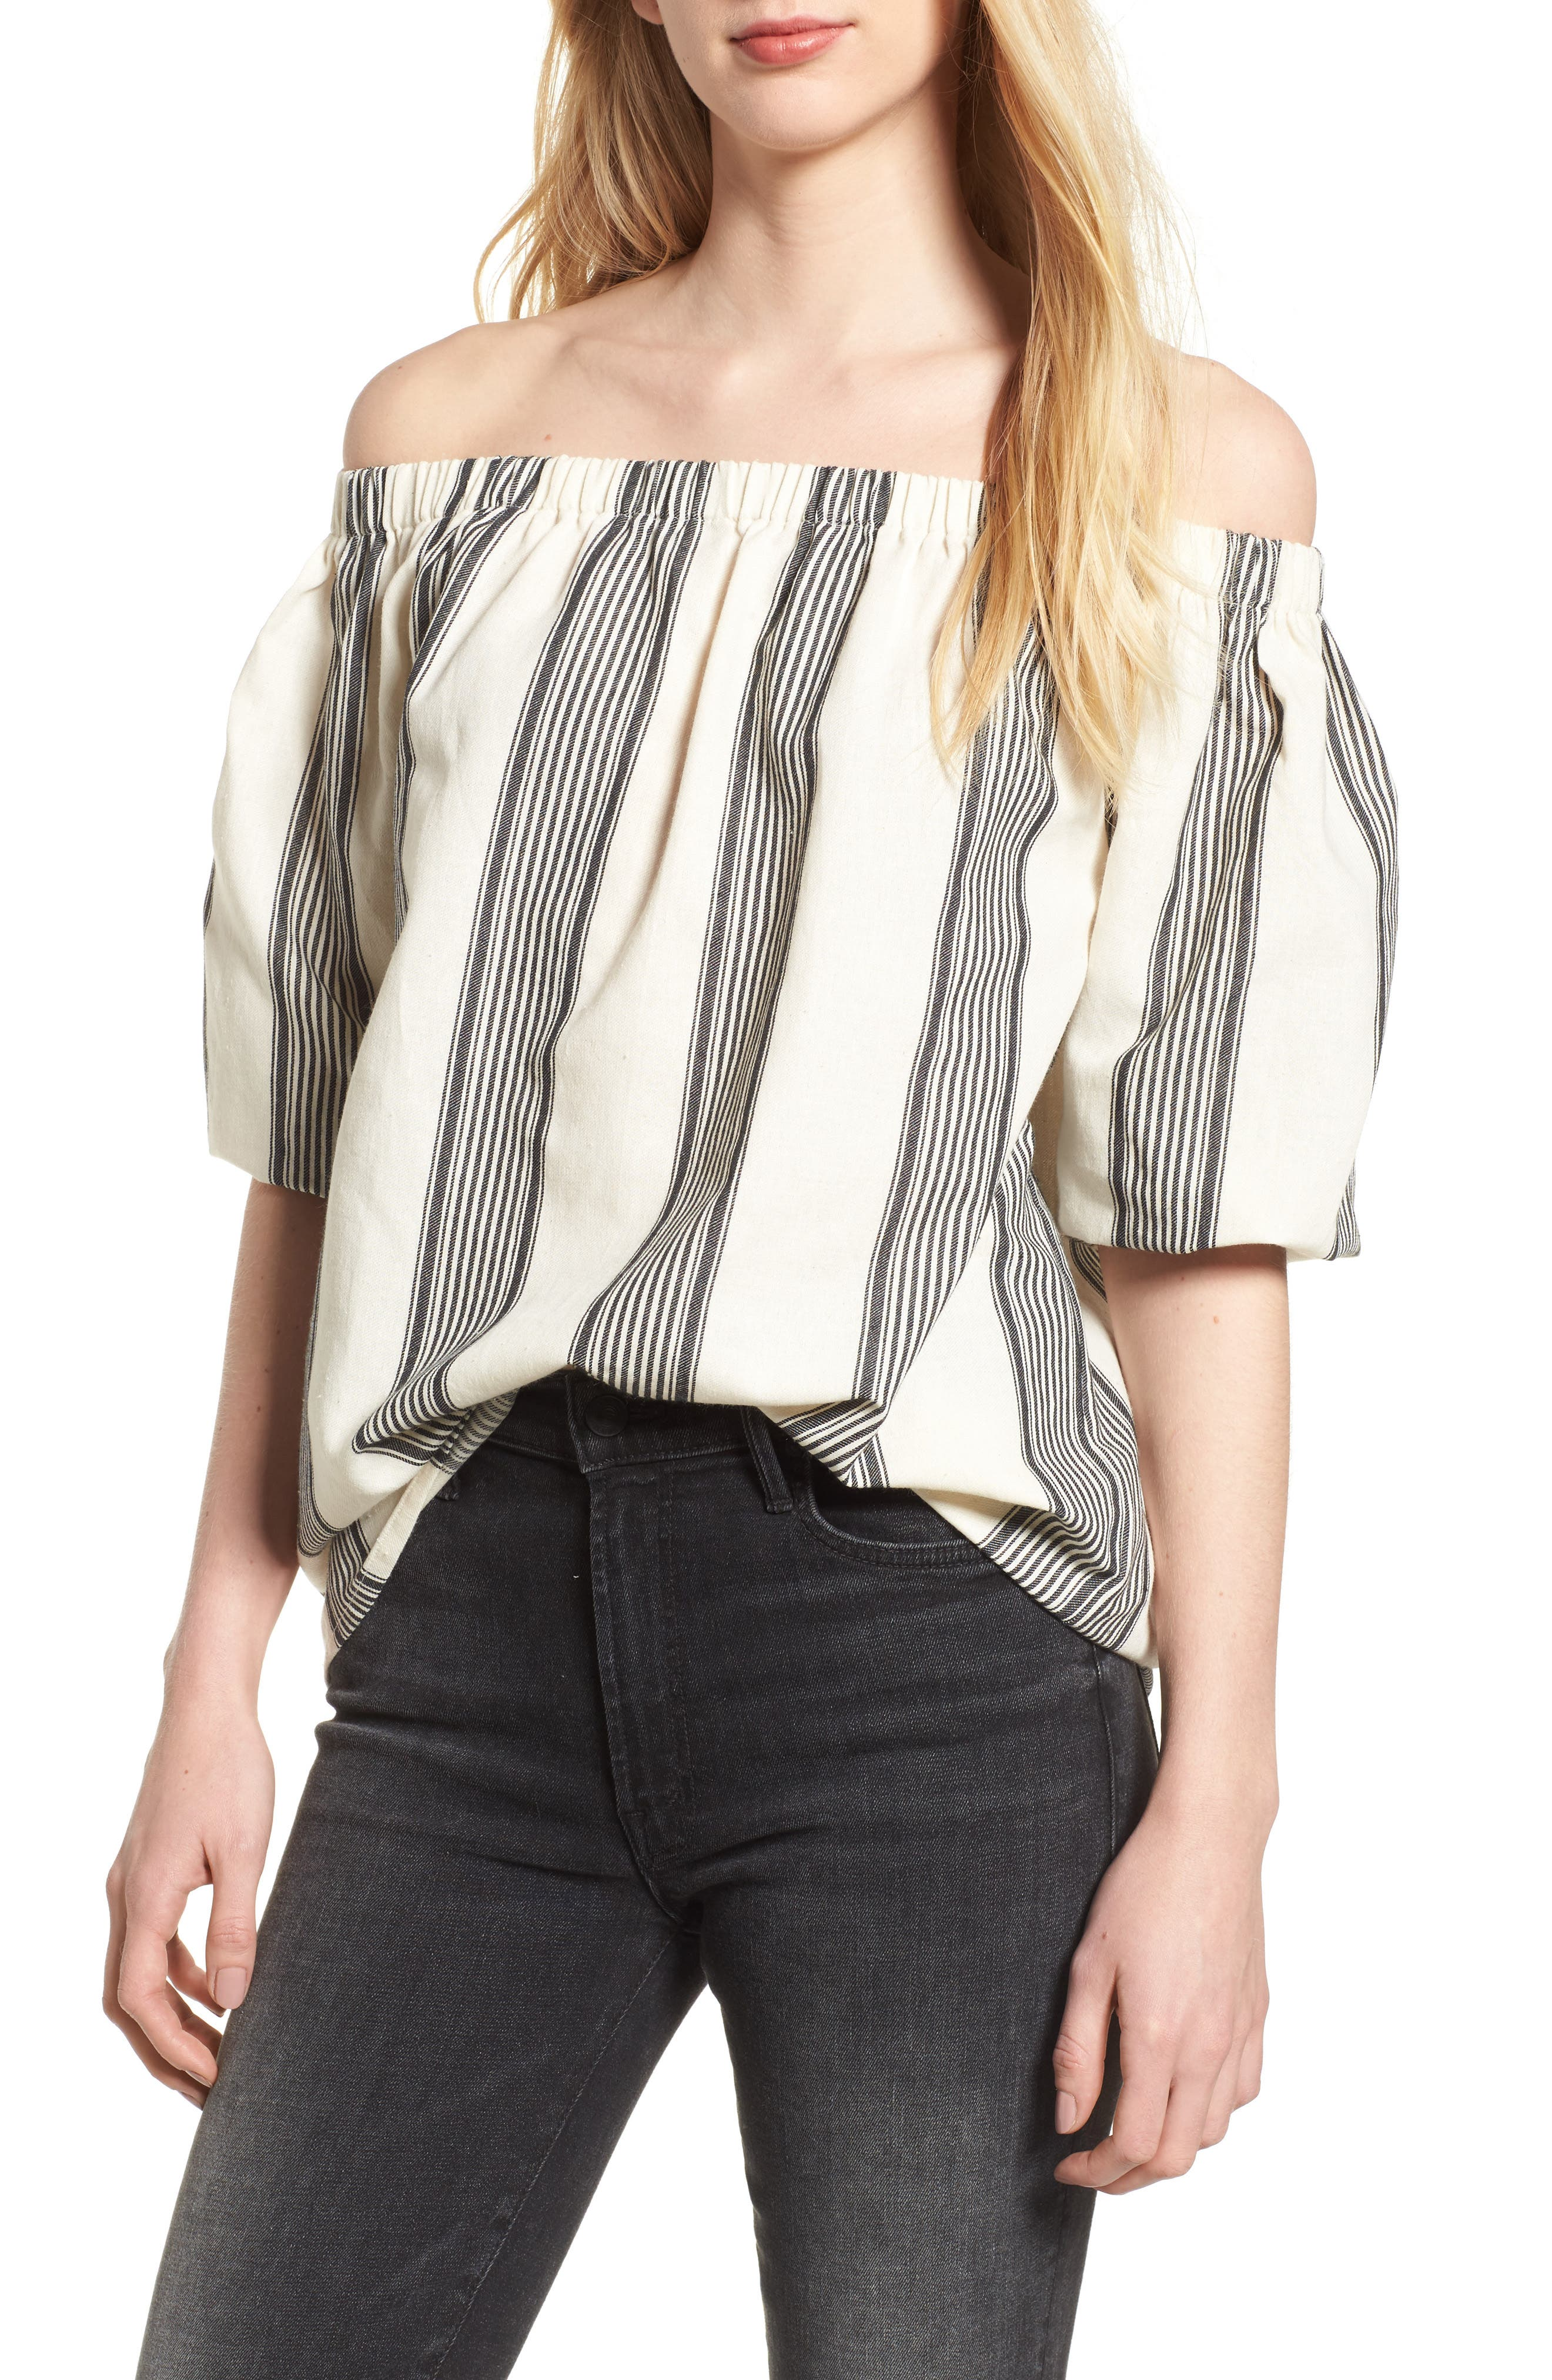 Bishop + Young Karlie Off the Shoulder Top,                             Main thumbnail 1, color,                             Grey Stripe